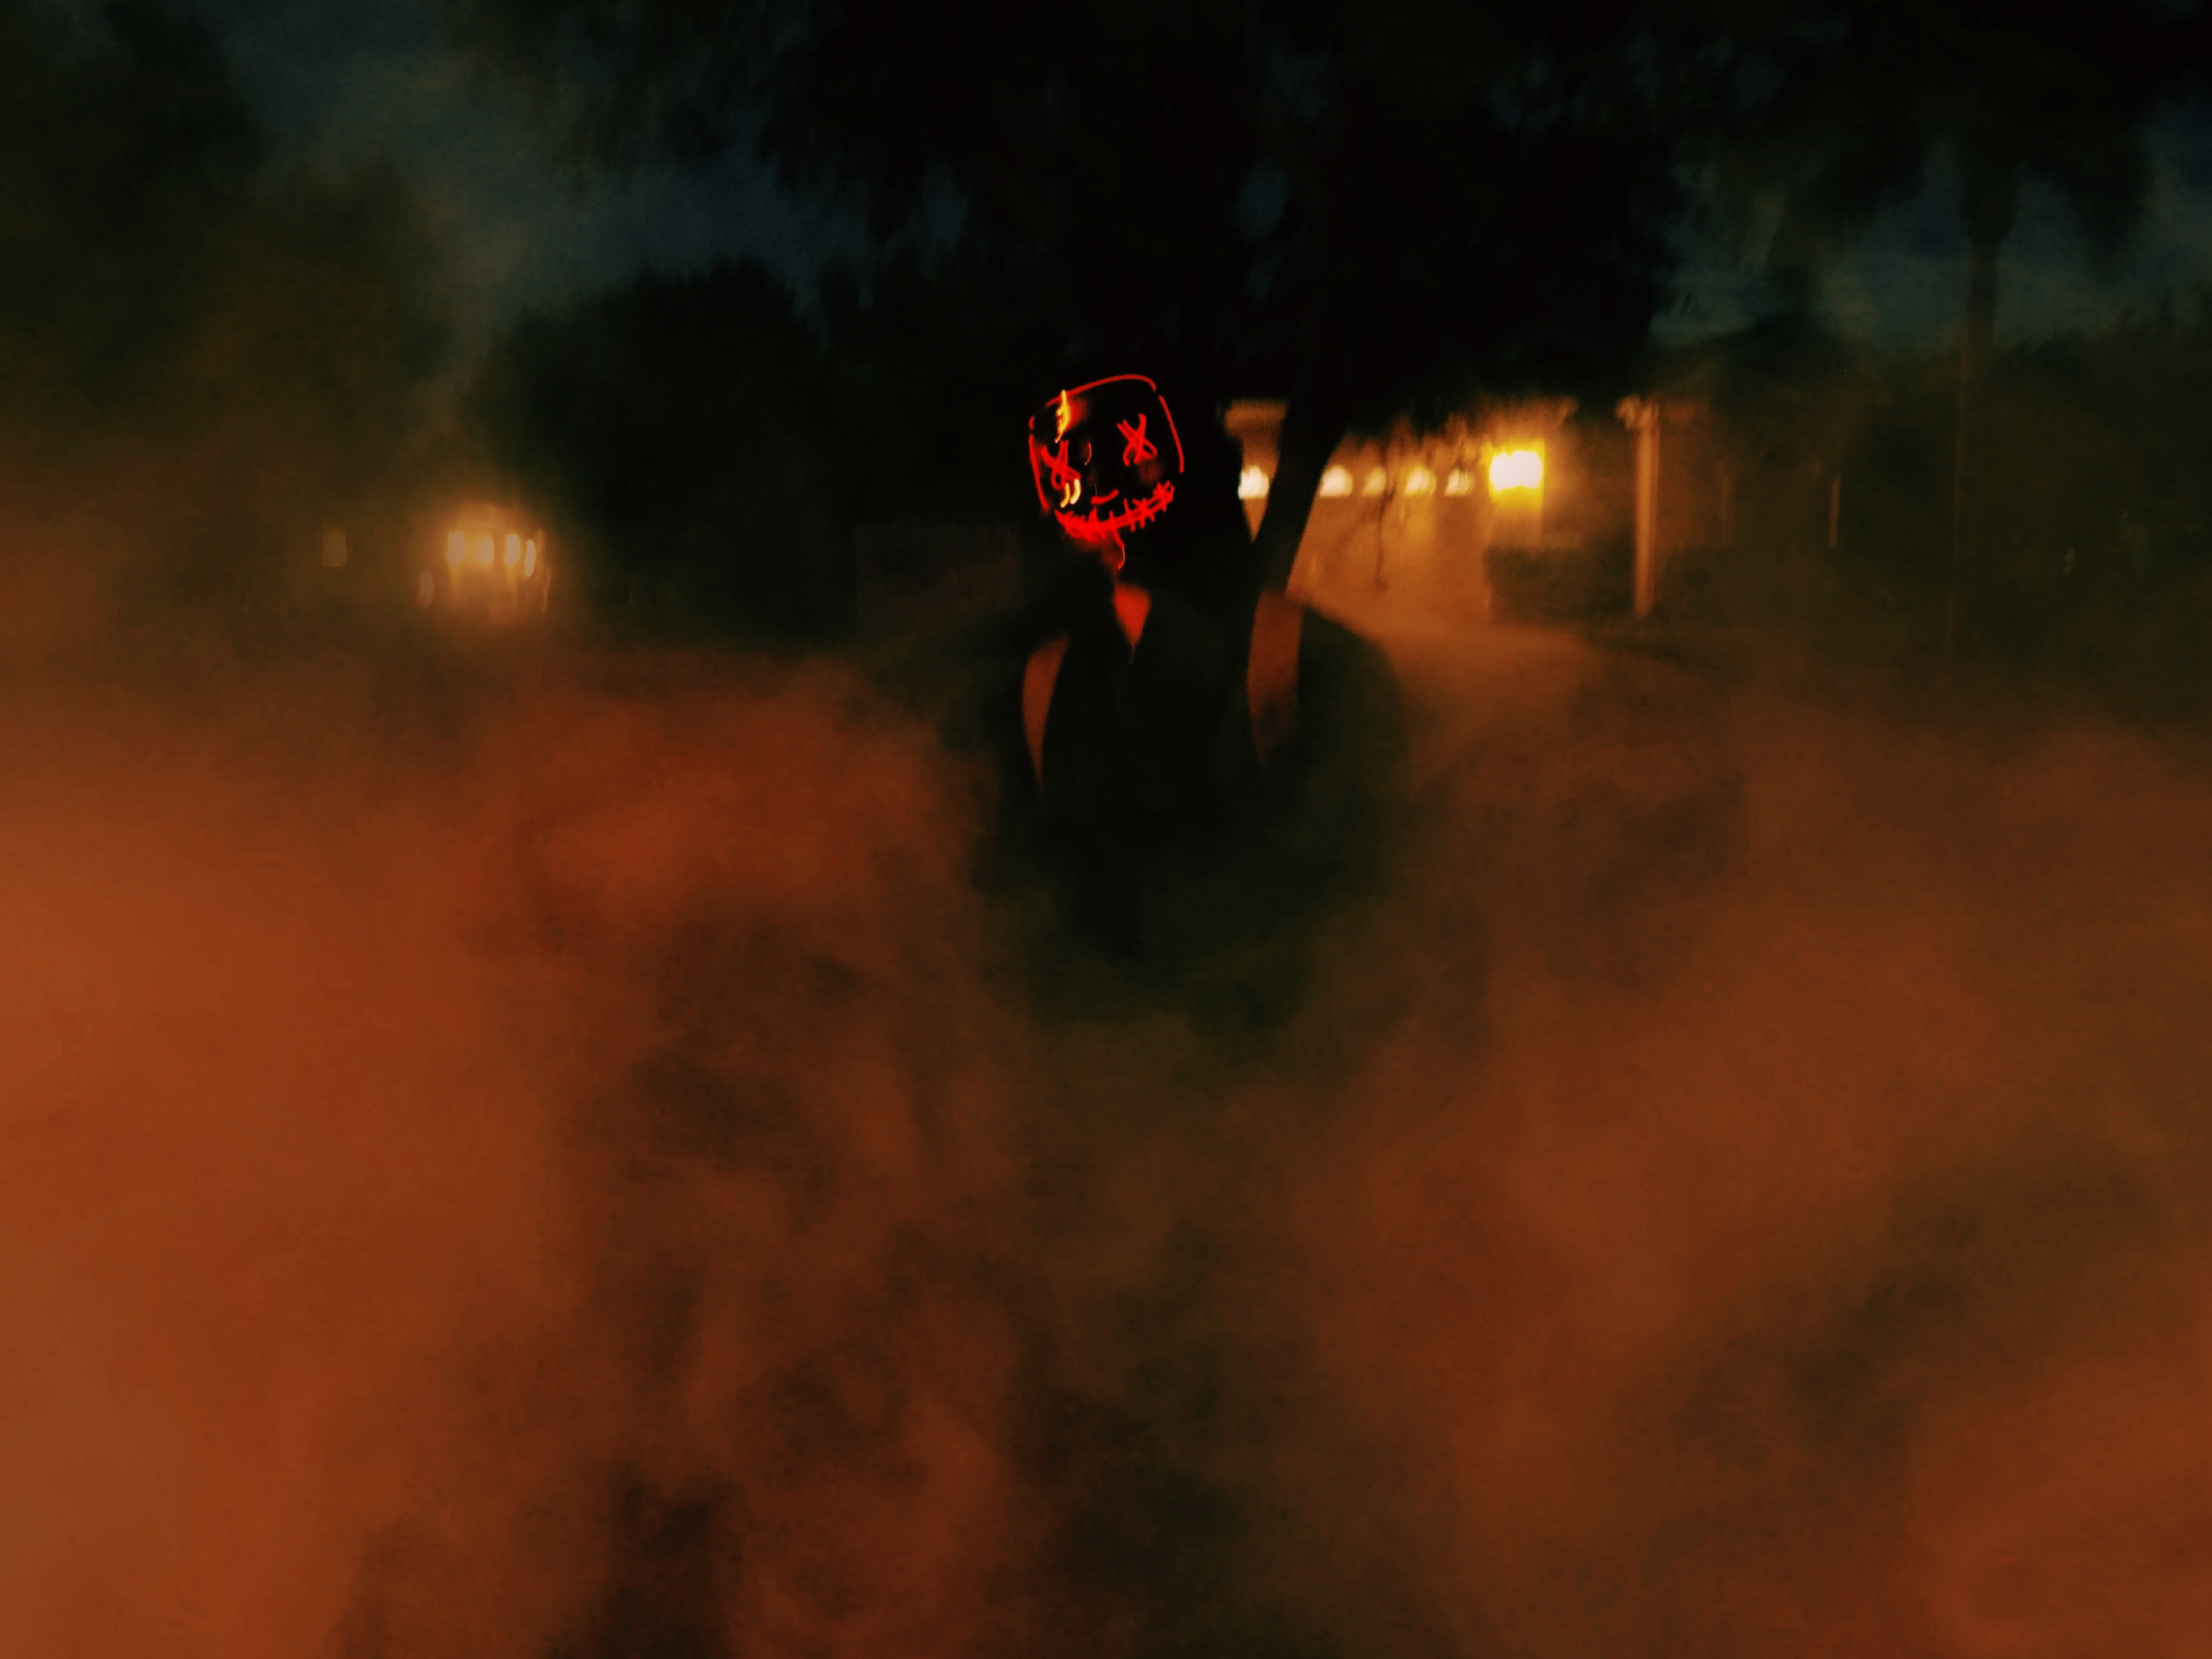 141898 download wallpaper Miscellanea, Miscellaneous, Human, Person, Mask, Night, Dark, Smoke screensavers and pictures for free